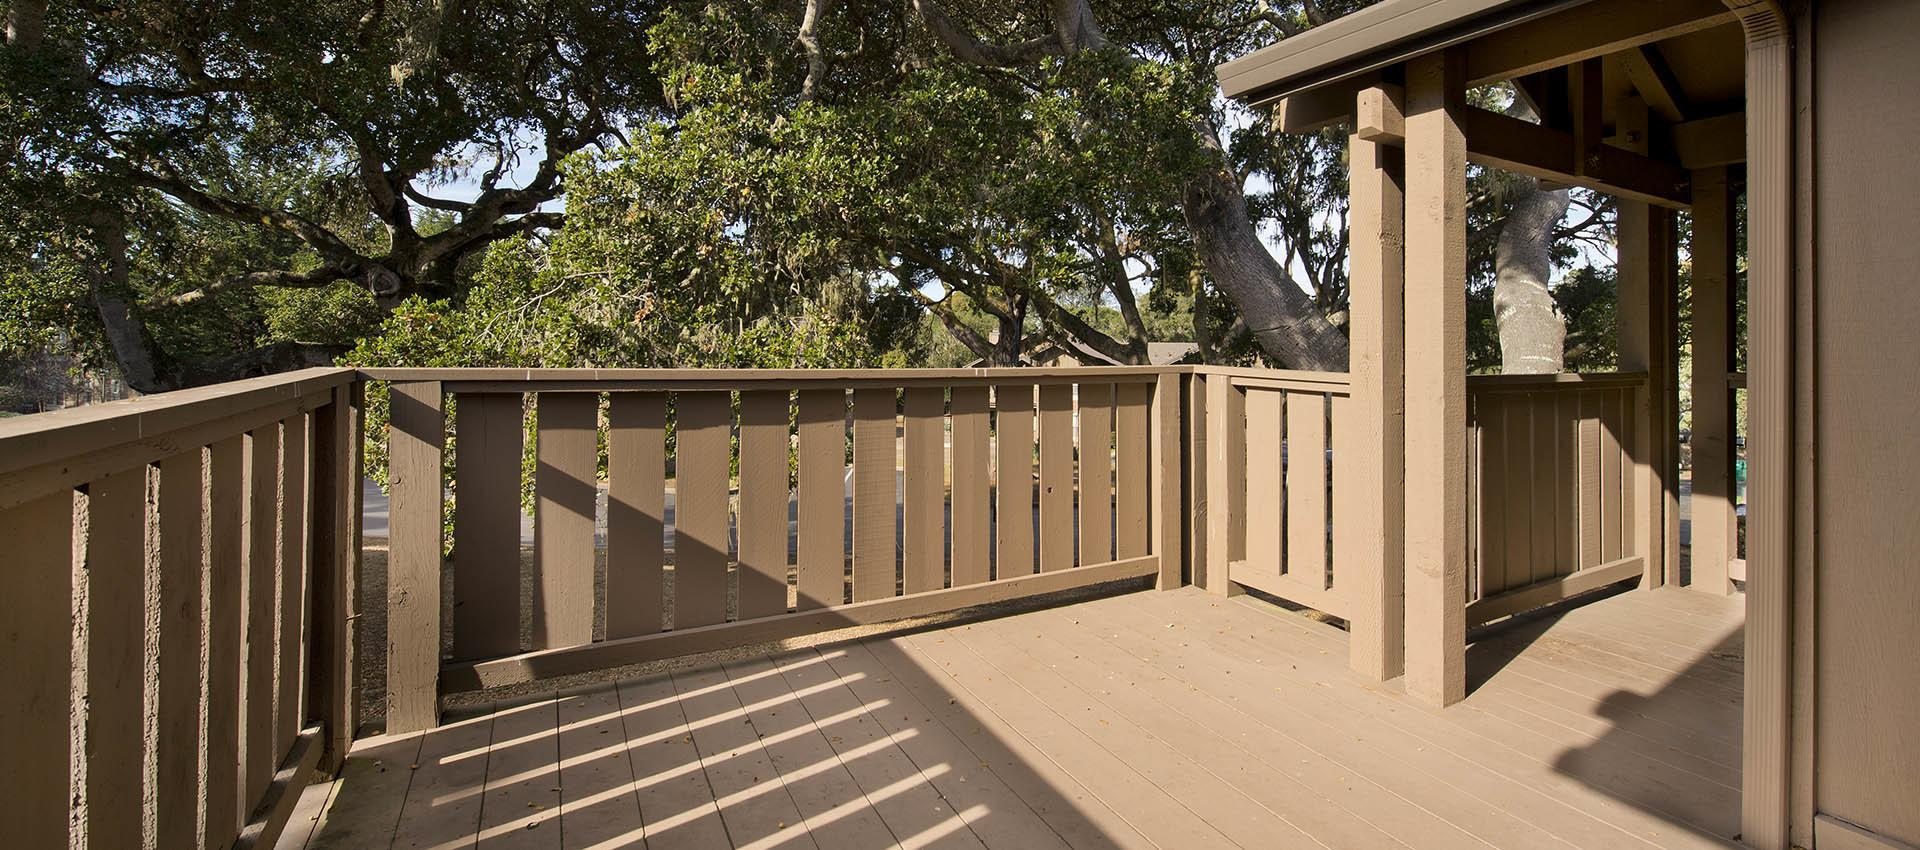 Apartment With Large Deck at Seventeen Mile Drive Village Apartment Homes in Pacific Grove